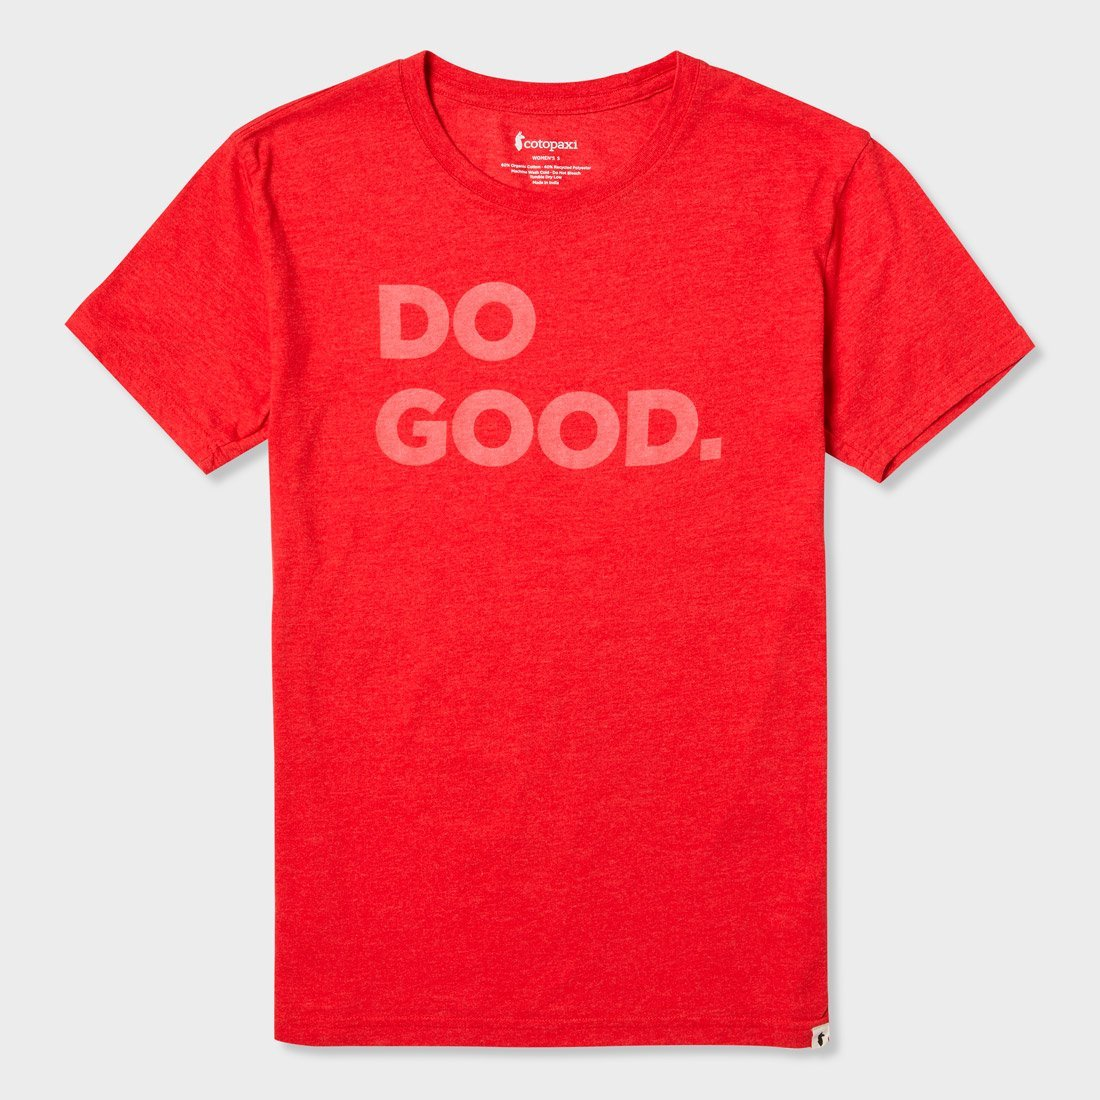 Cotopaxi Women's Do Good T-Shirt Racing Red